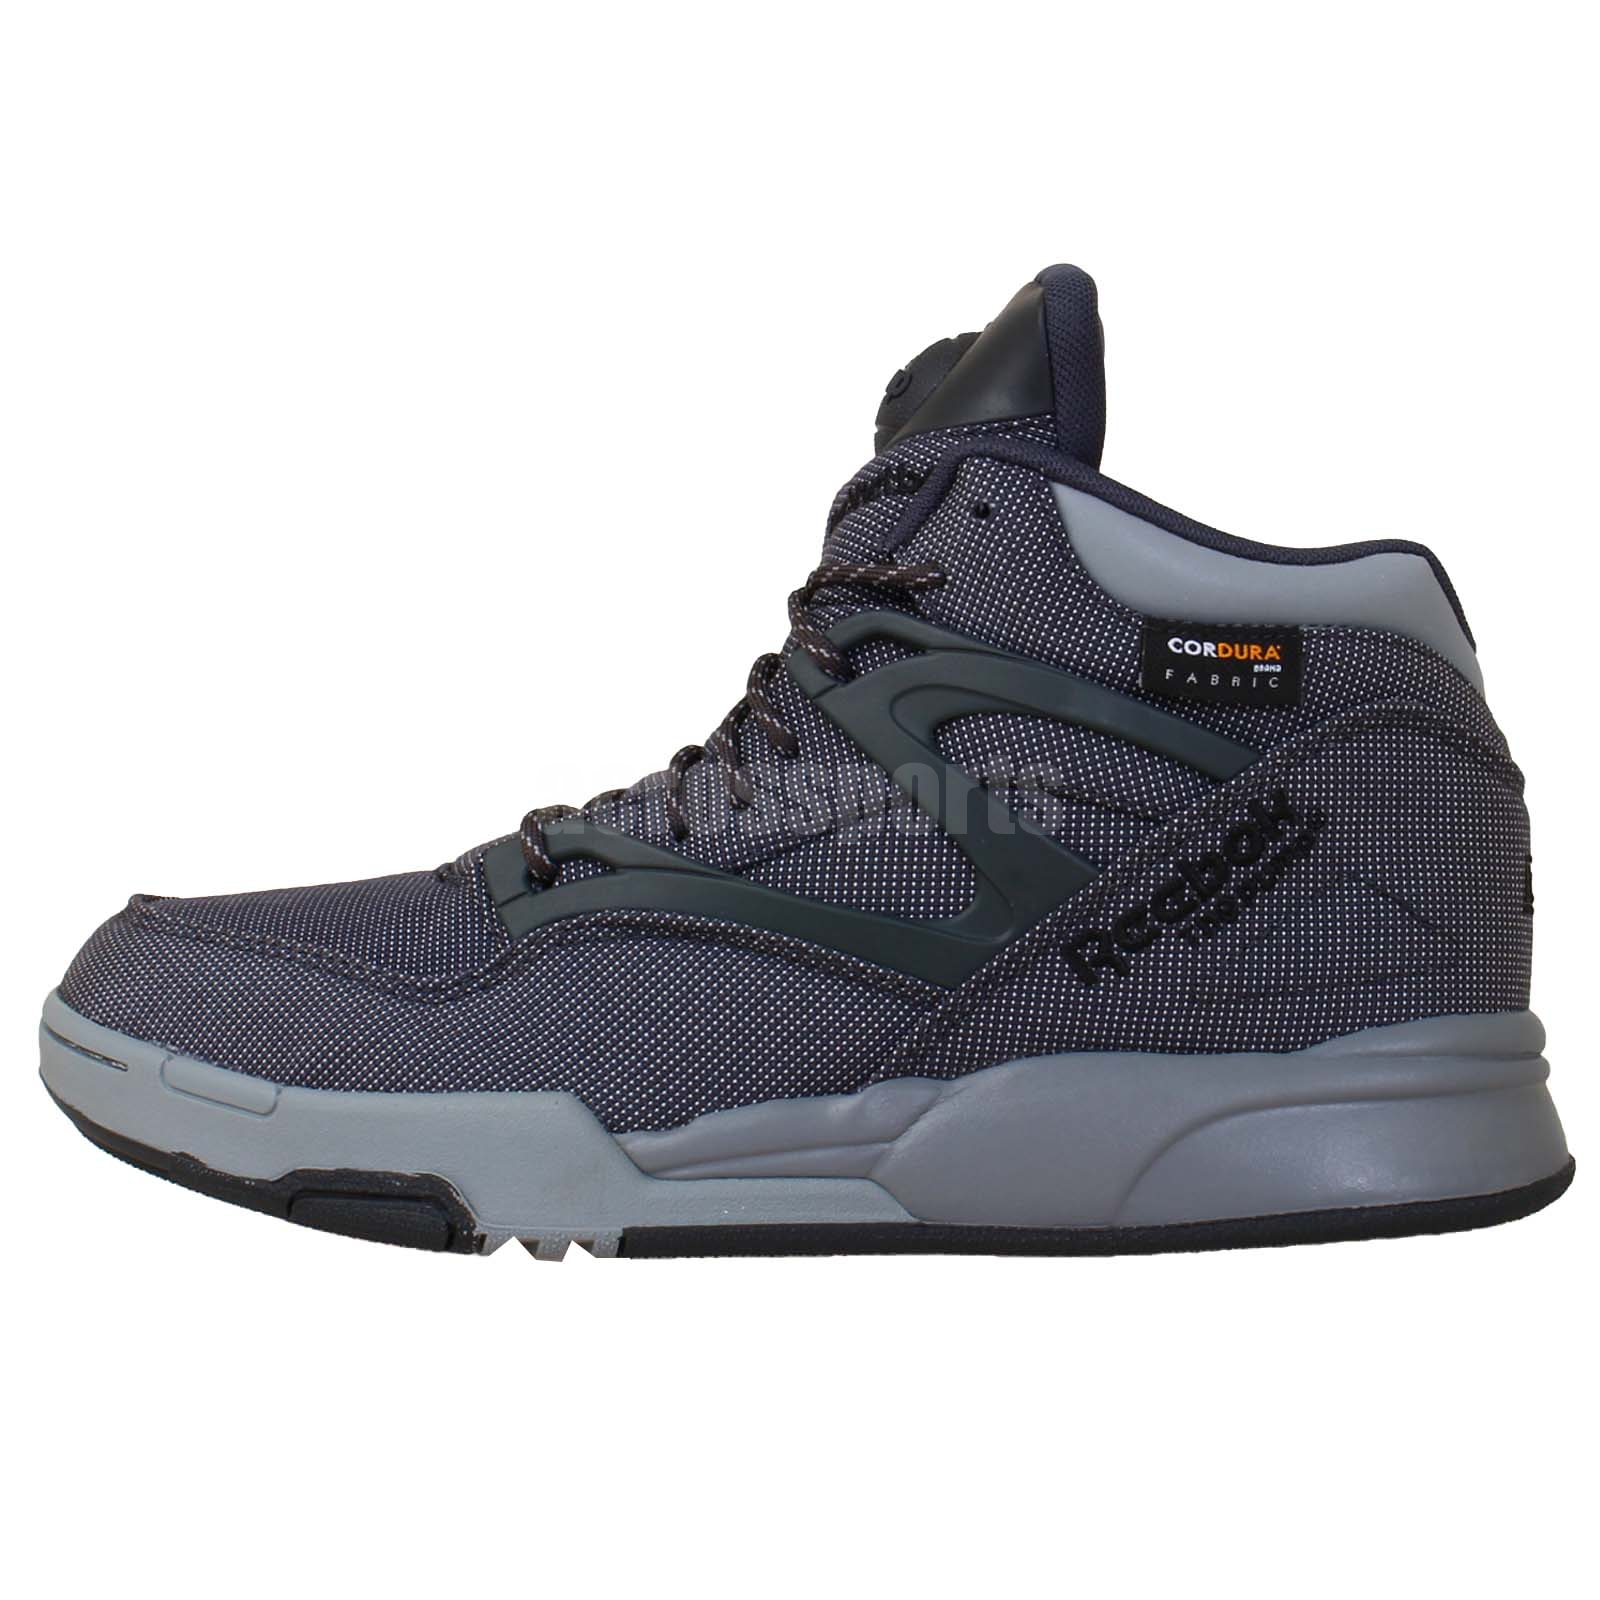 reebok pump omni lite cordura 2014 mens retro basketball shoes sneakers ebay. Black Bedroom Furniture Sets. Home Design Ideas